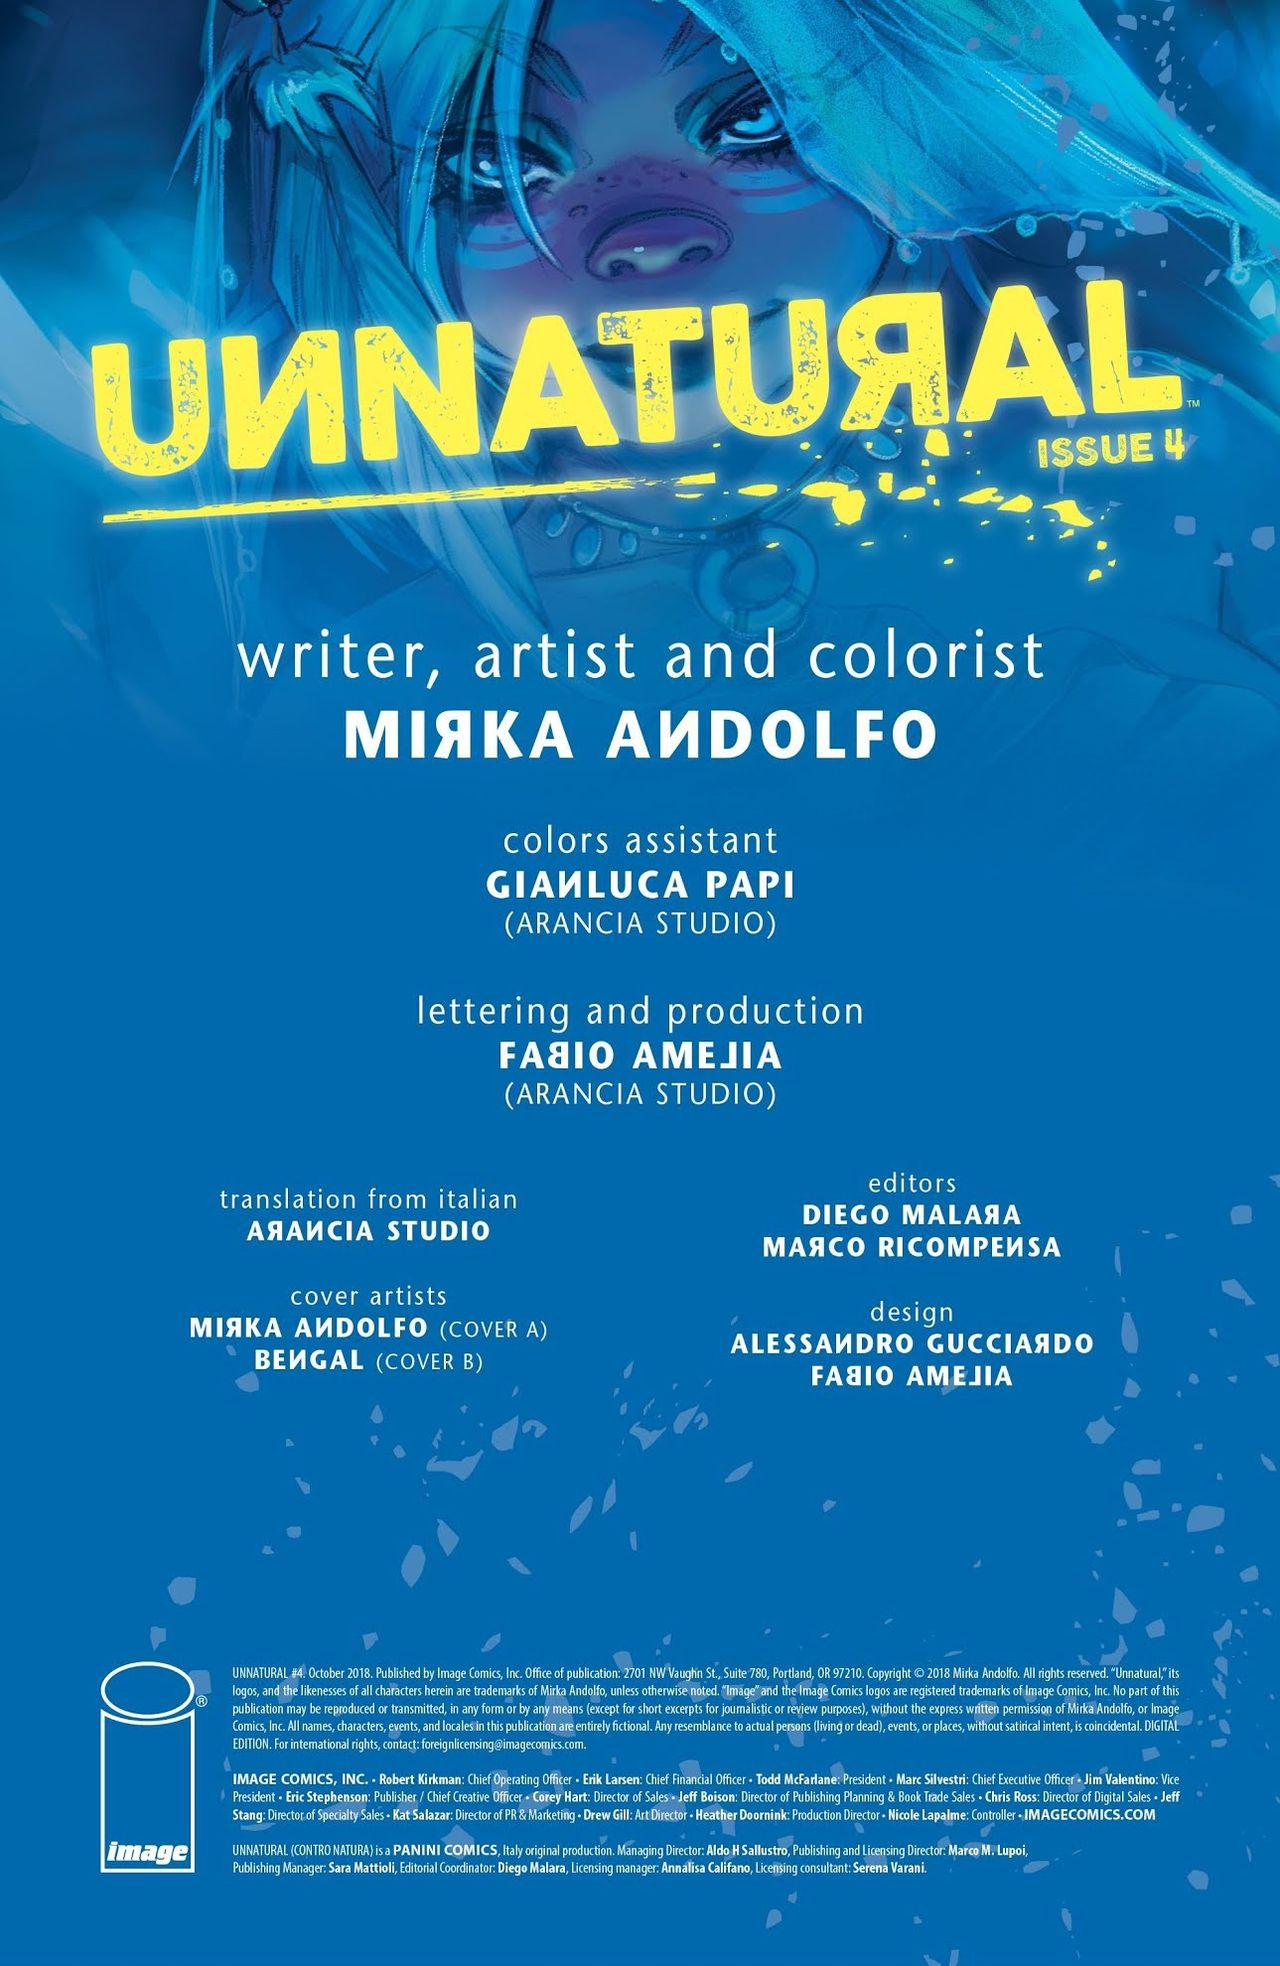 Unnatural Issue 4- Mirka Andolfo